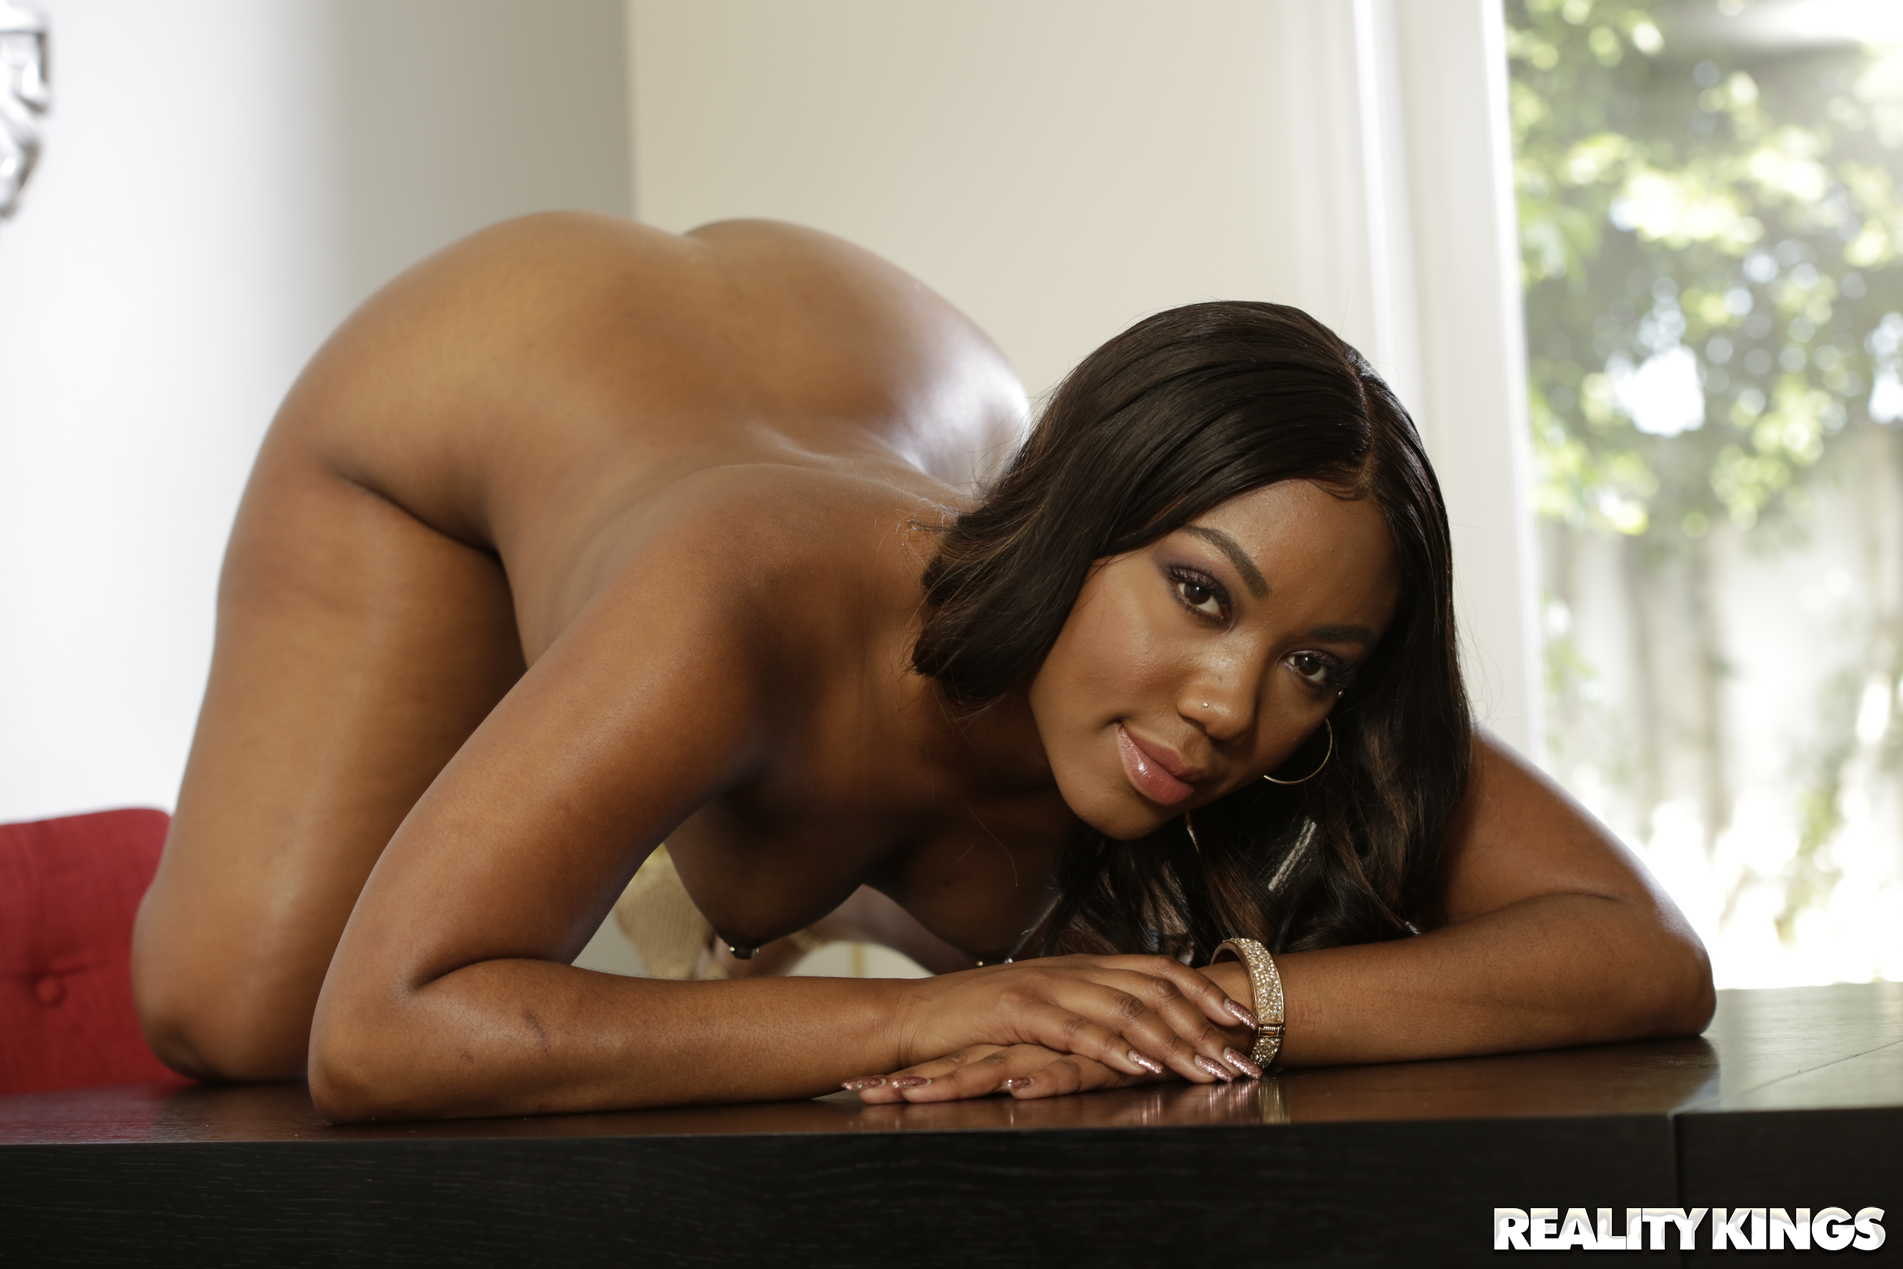 Reality Kings 'Hold The Line And This Dick' starring Chanell Heart (Photo 54)